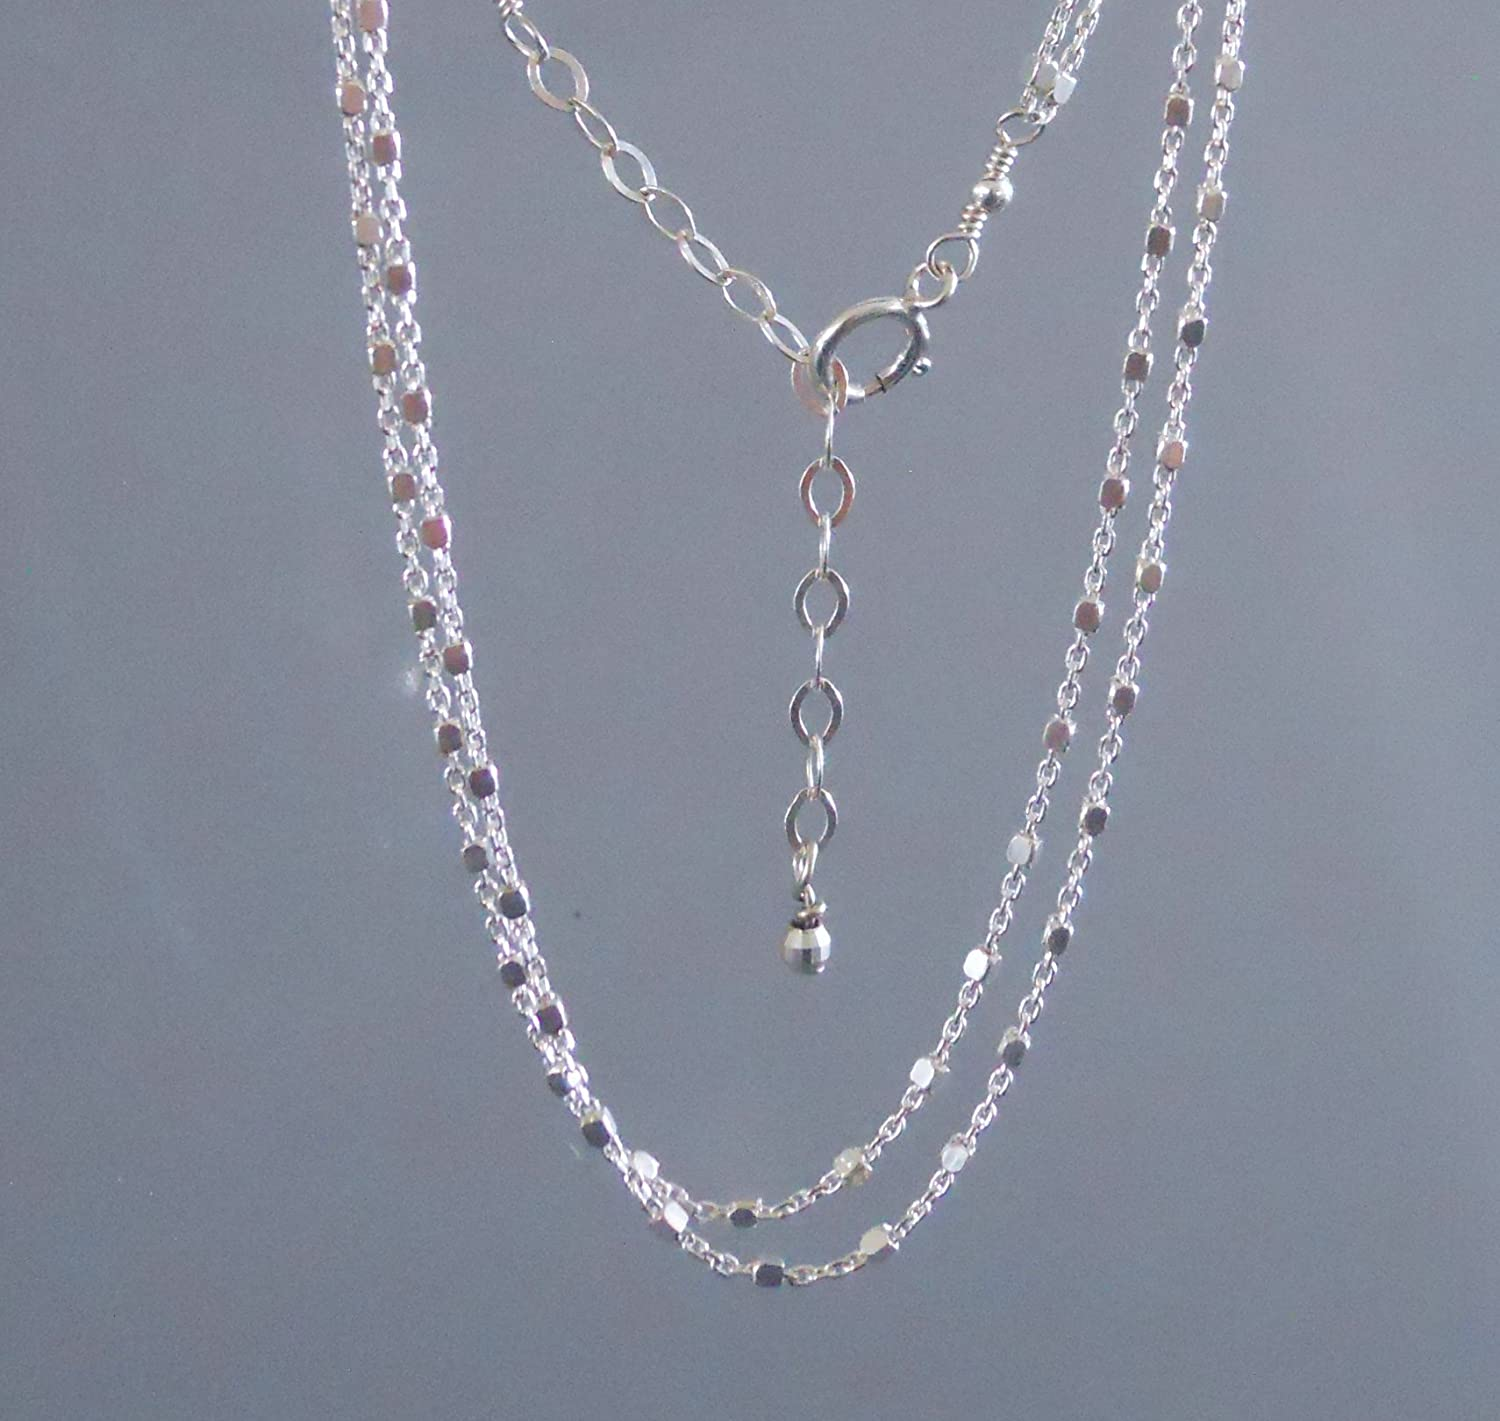 58900bd25 ... Handmade Sterling Silver Multi Stranded Chain Anklet - 9 + 1.5 Extender  -Delicate Double Layered ...